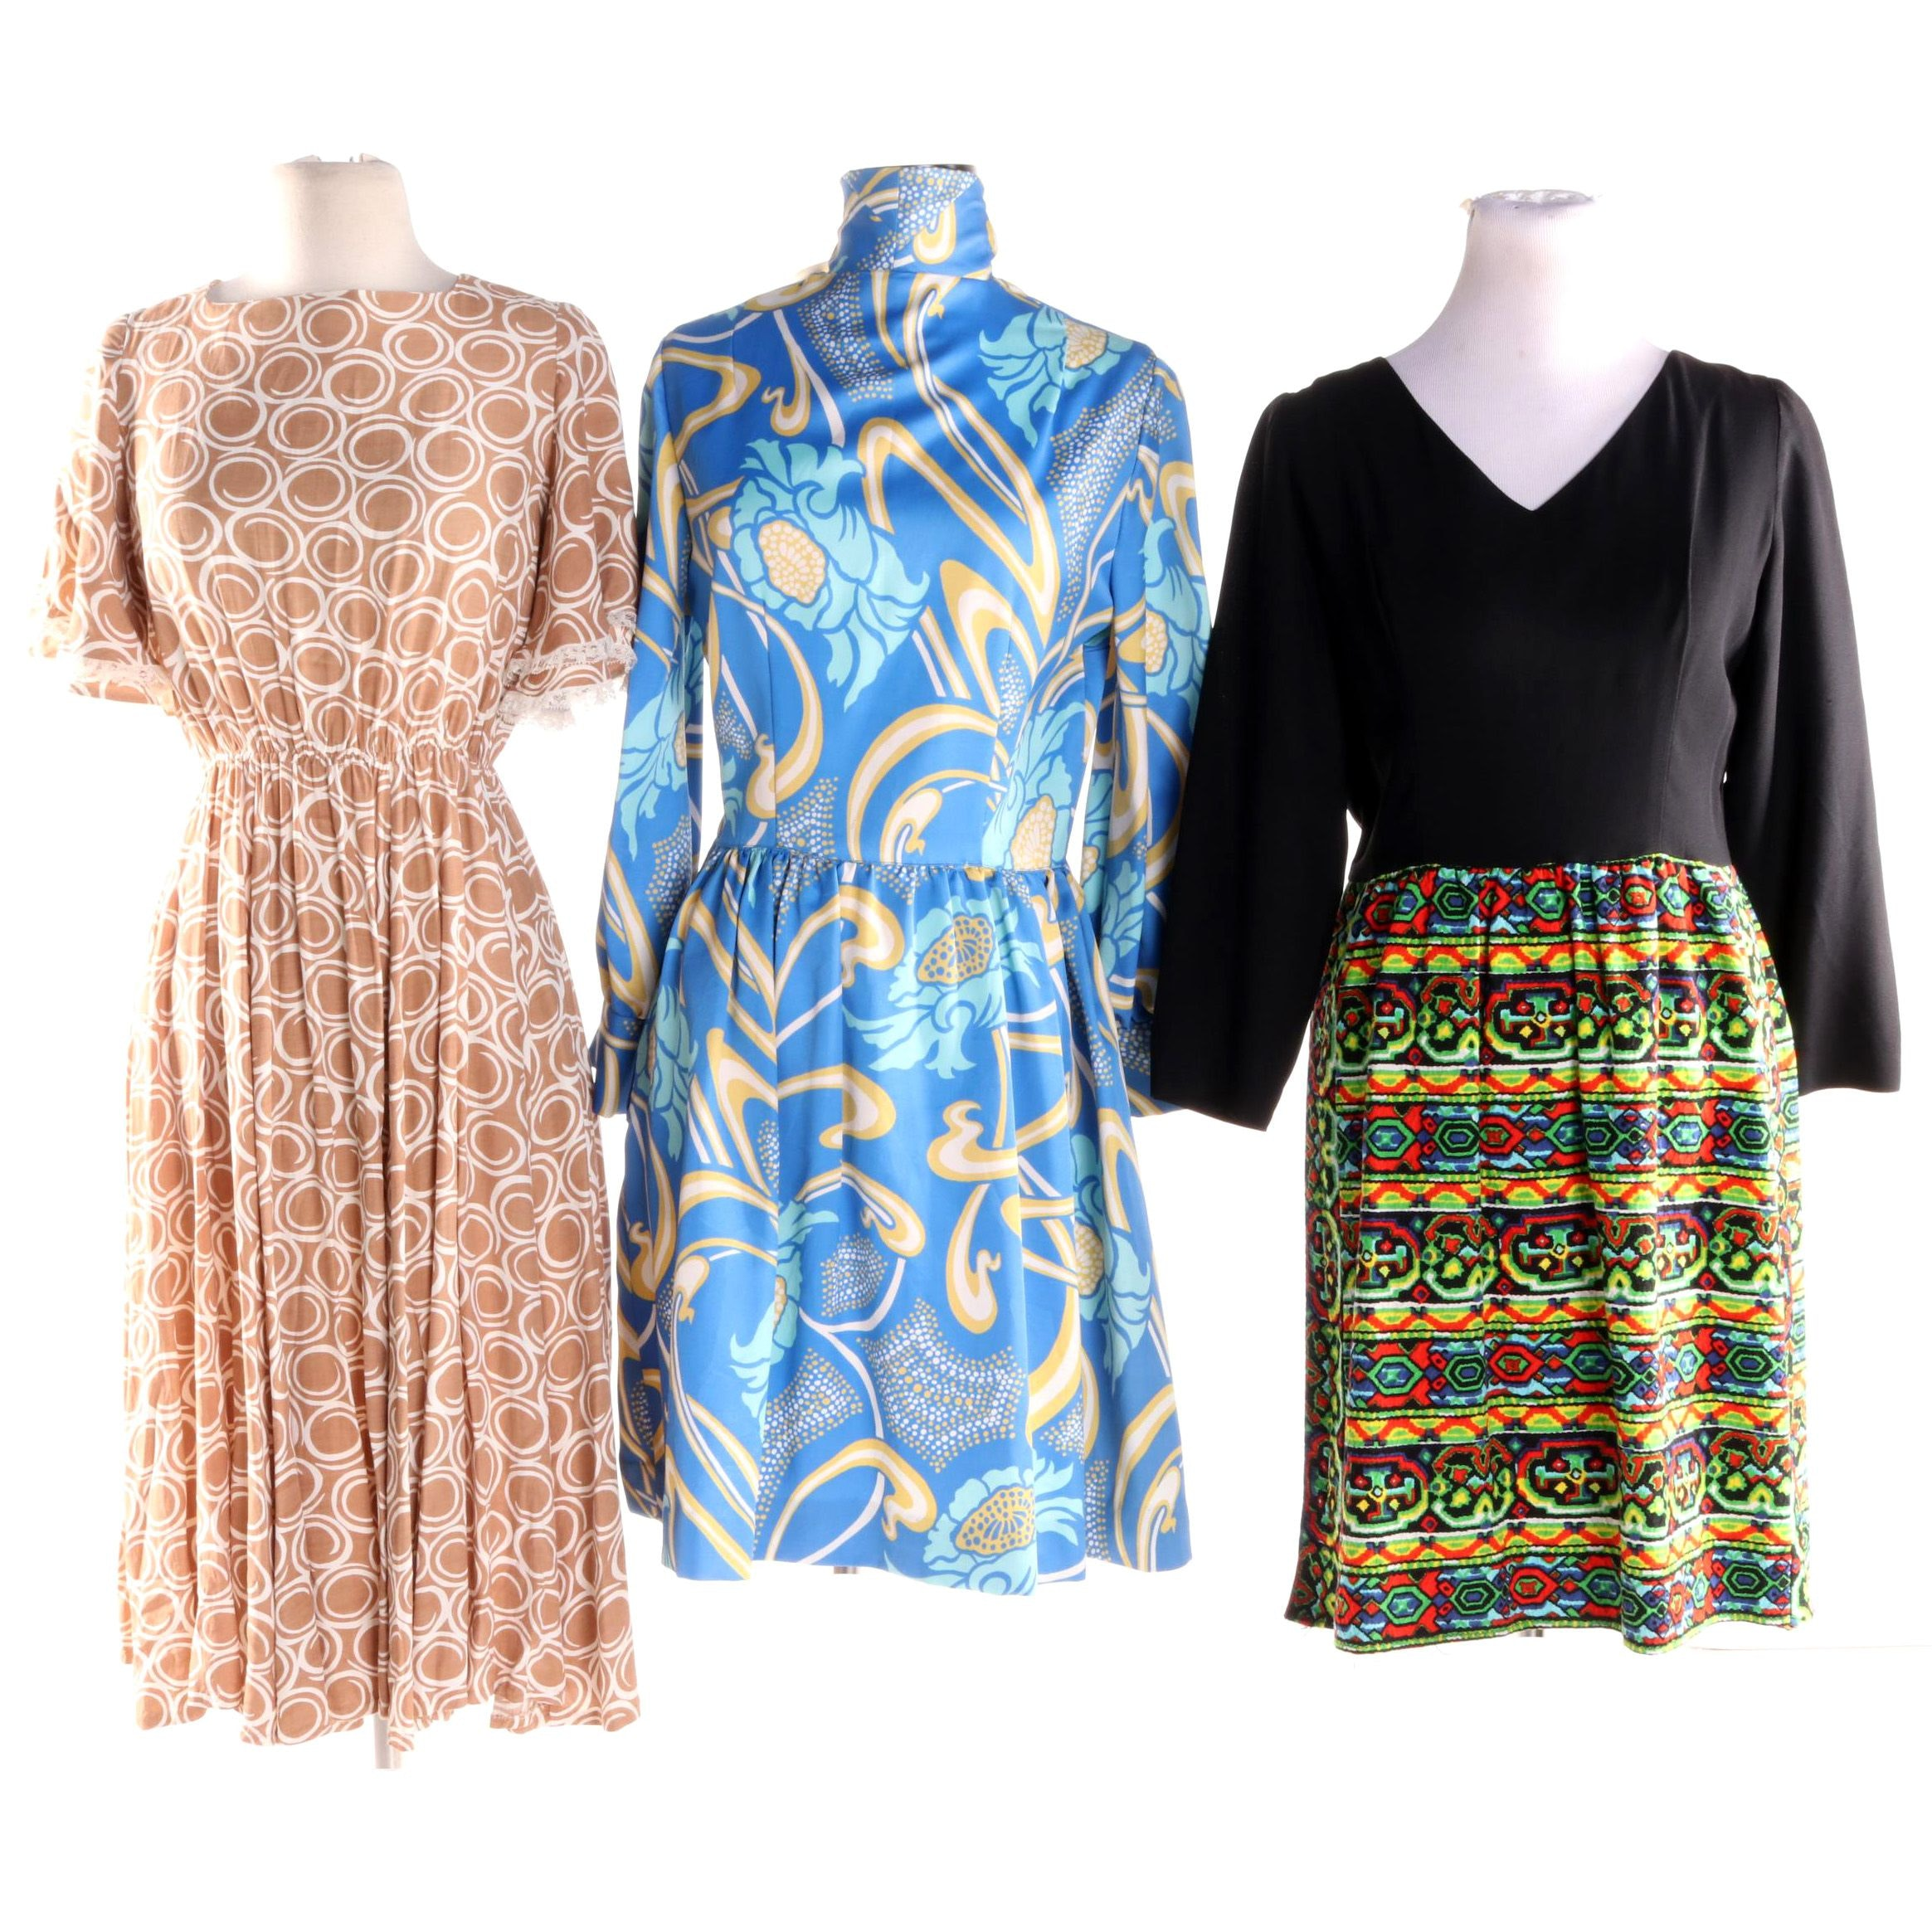 1970s Vintage Op Art Colorful Print Dresses